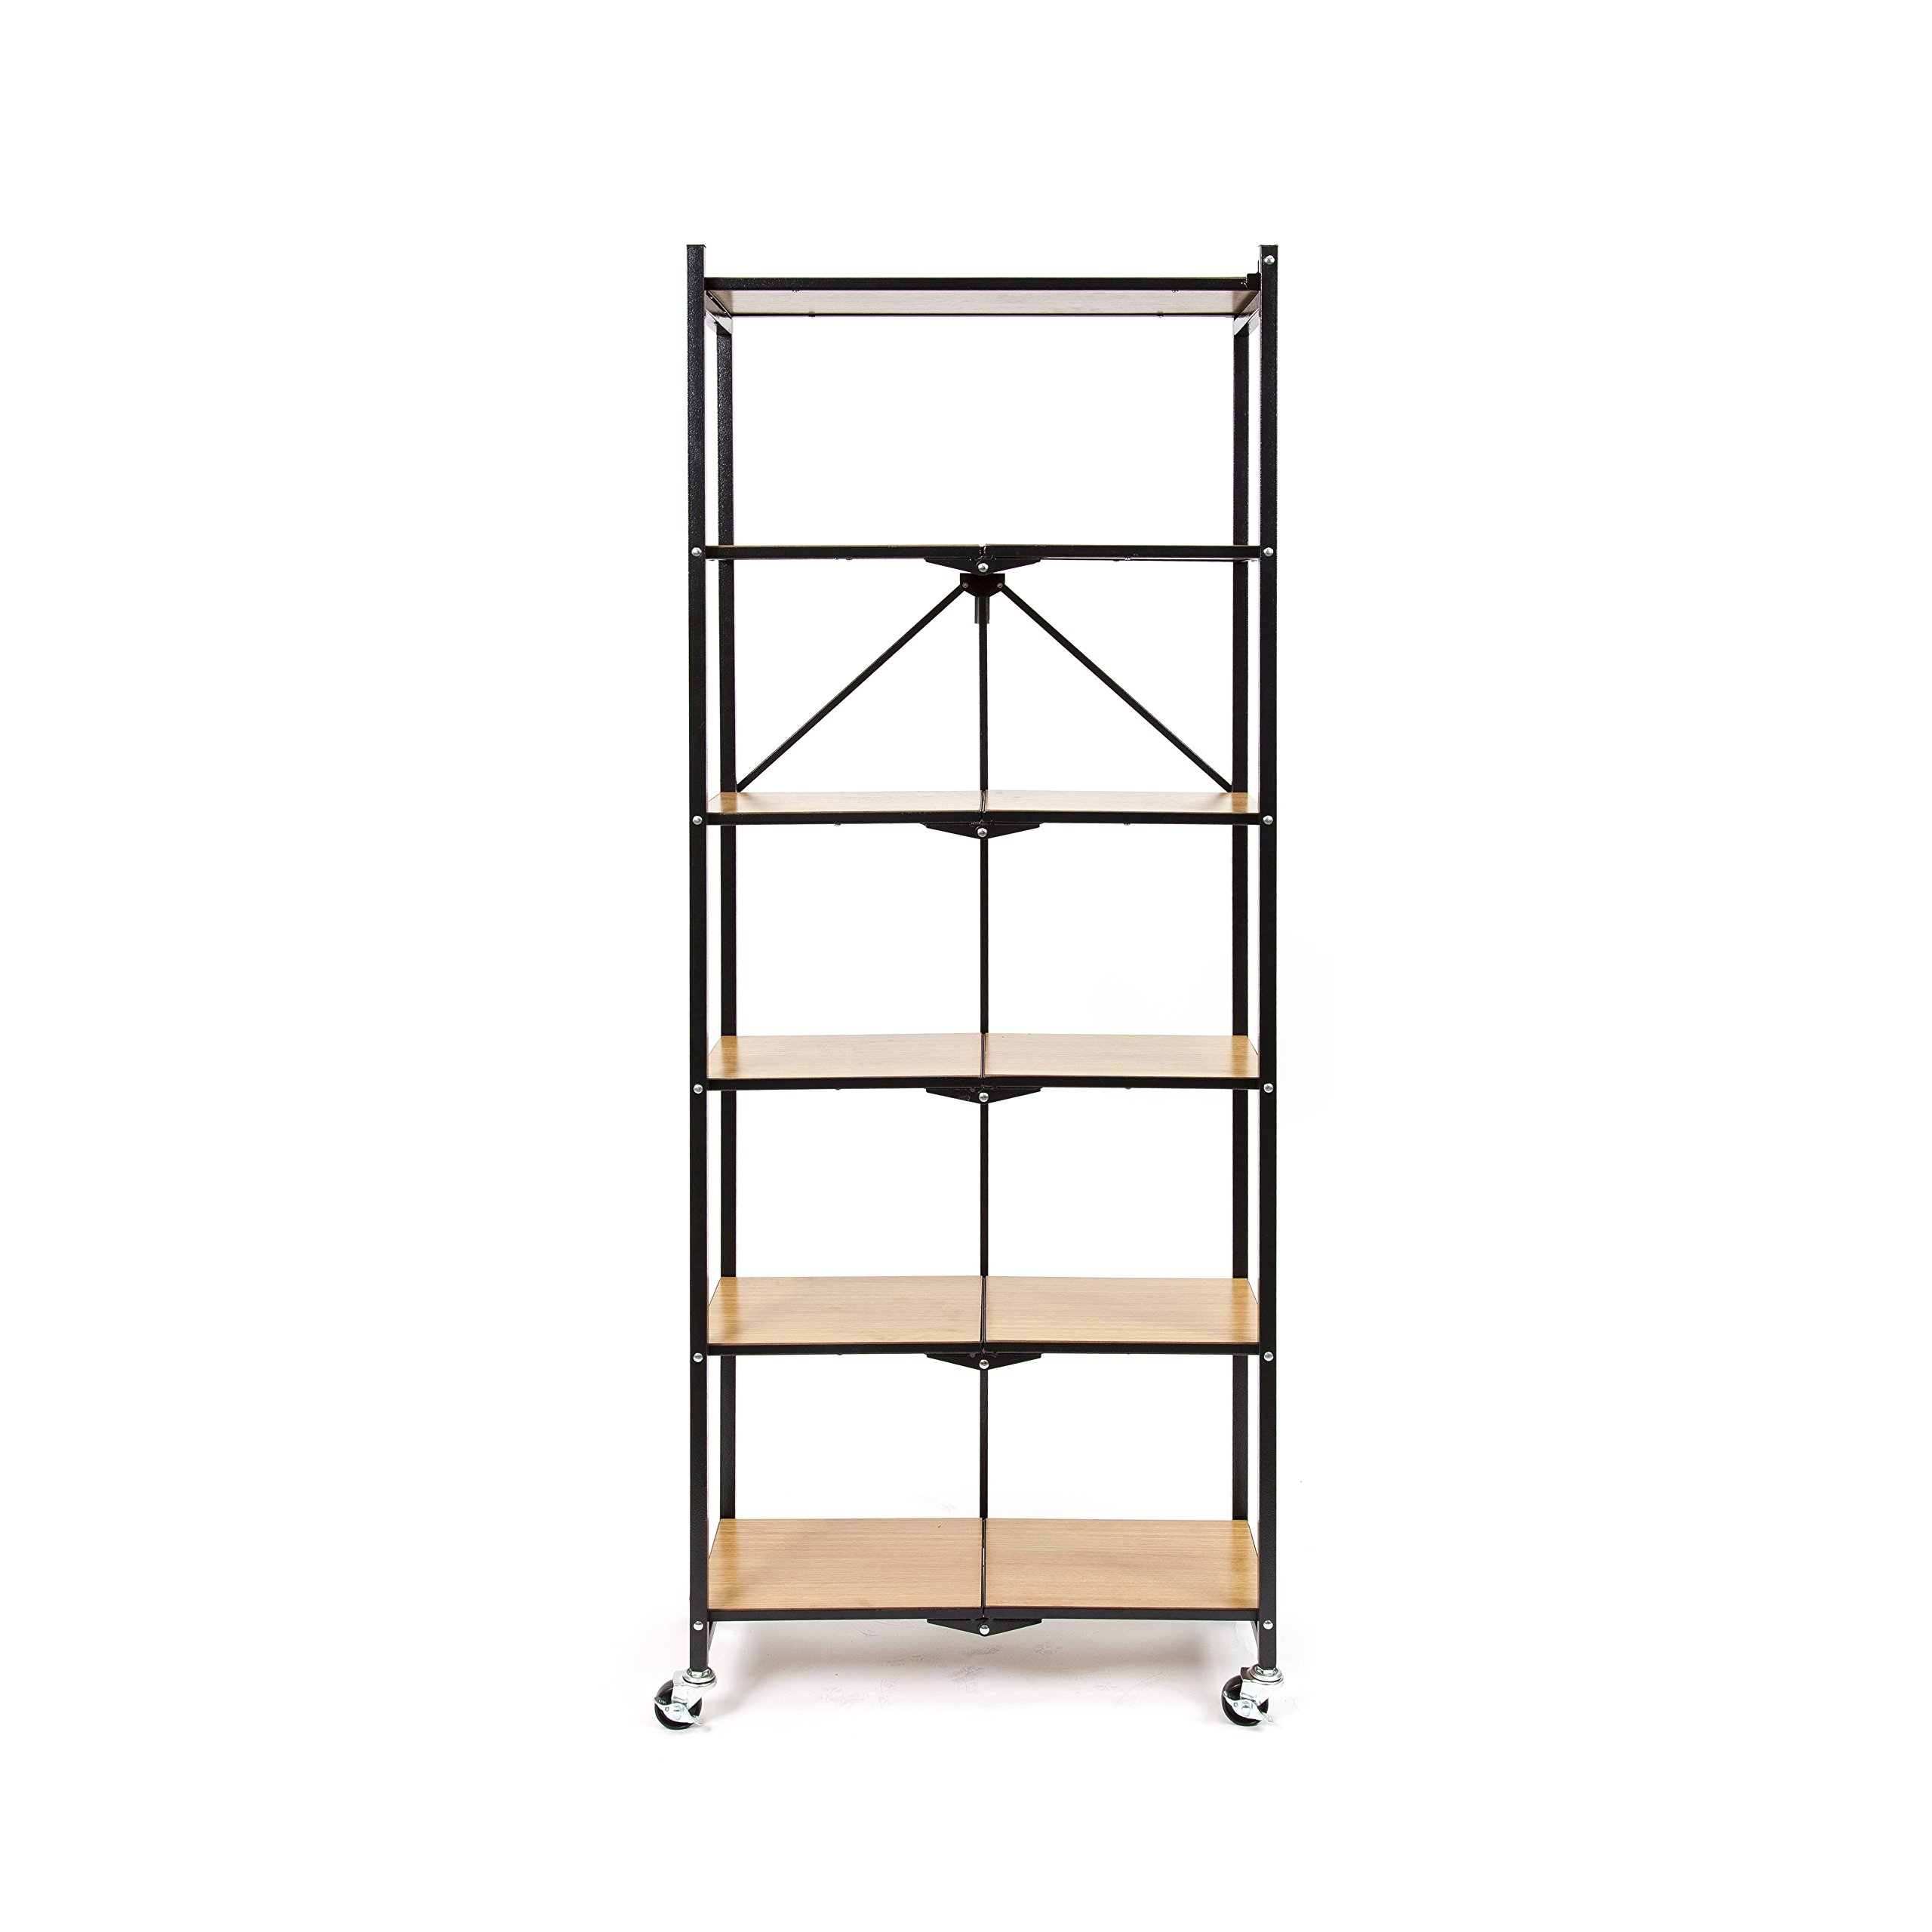 Origami R6-WB-Blkoak 6 Tier with Wood Shelves, Black